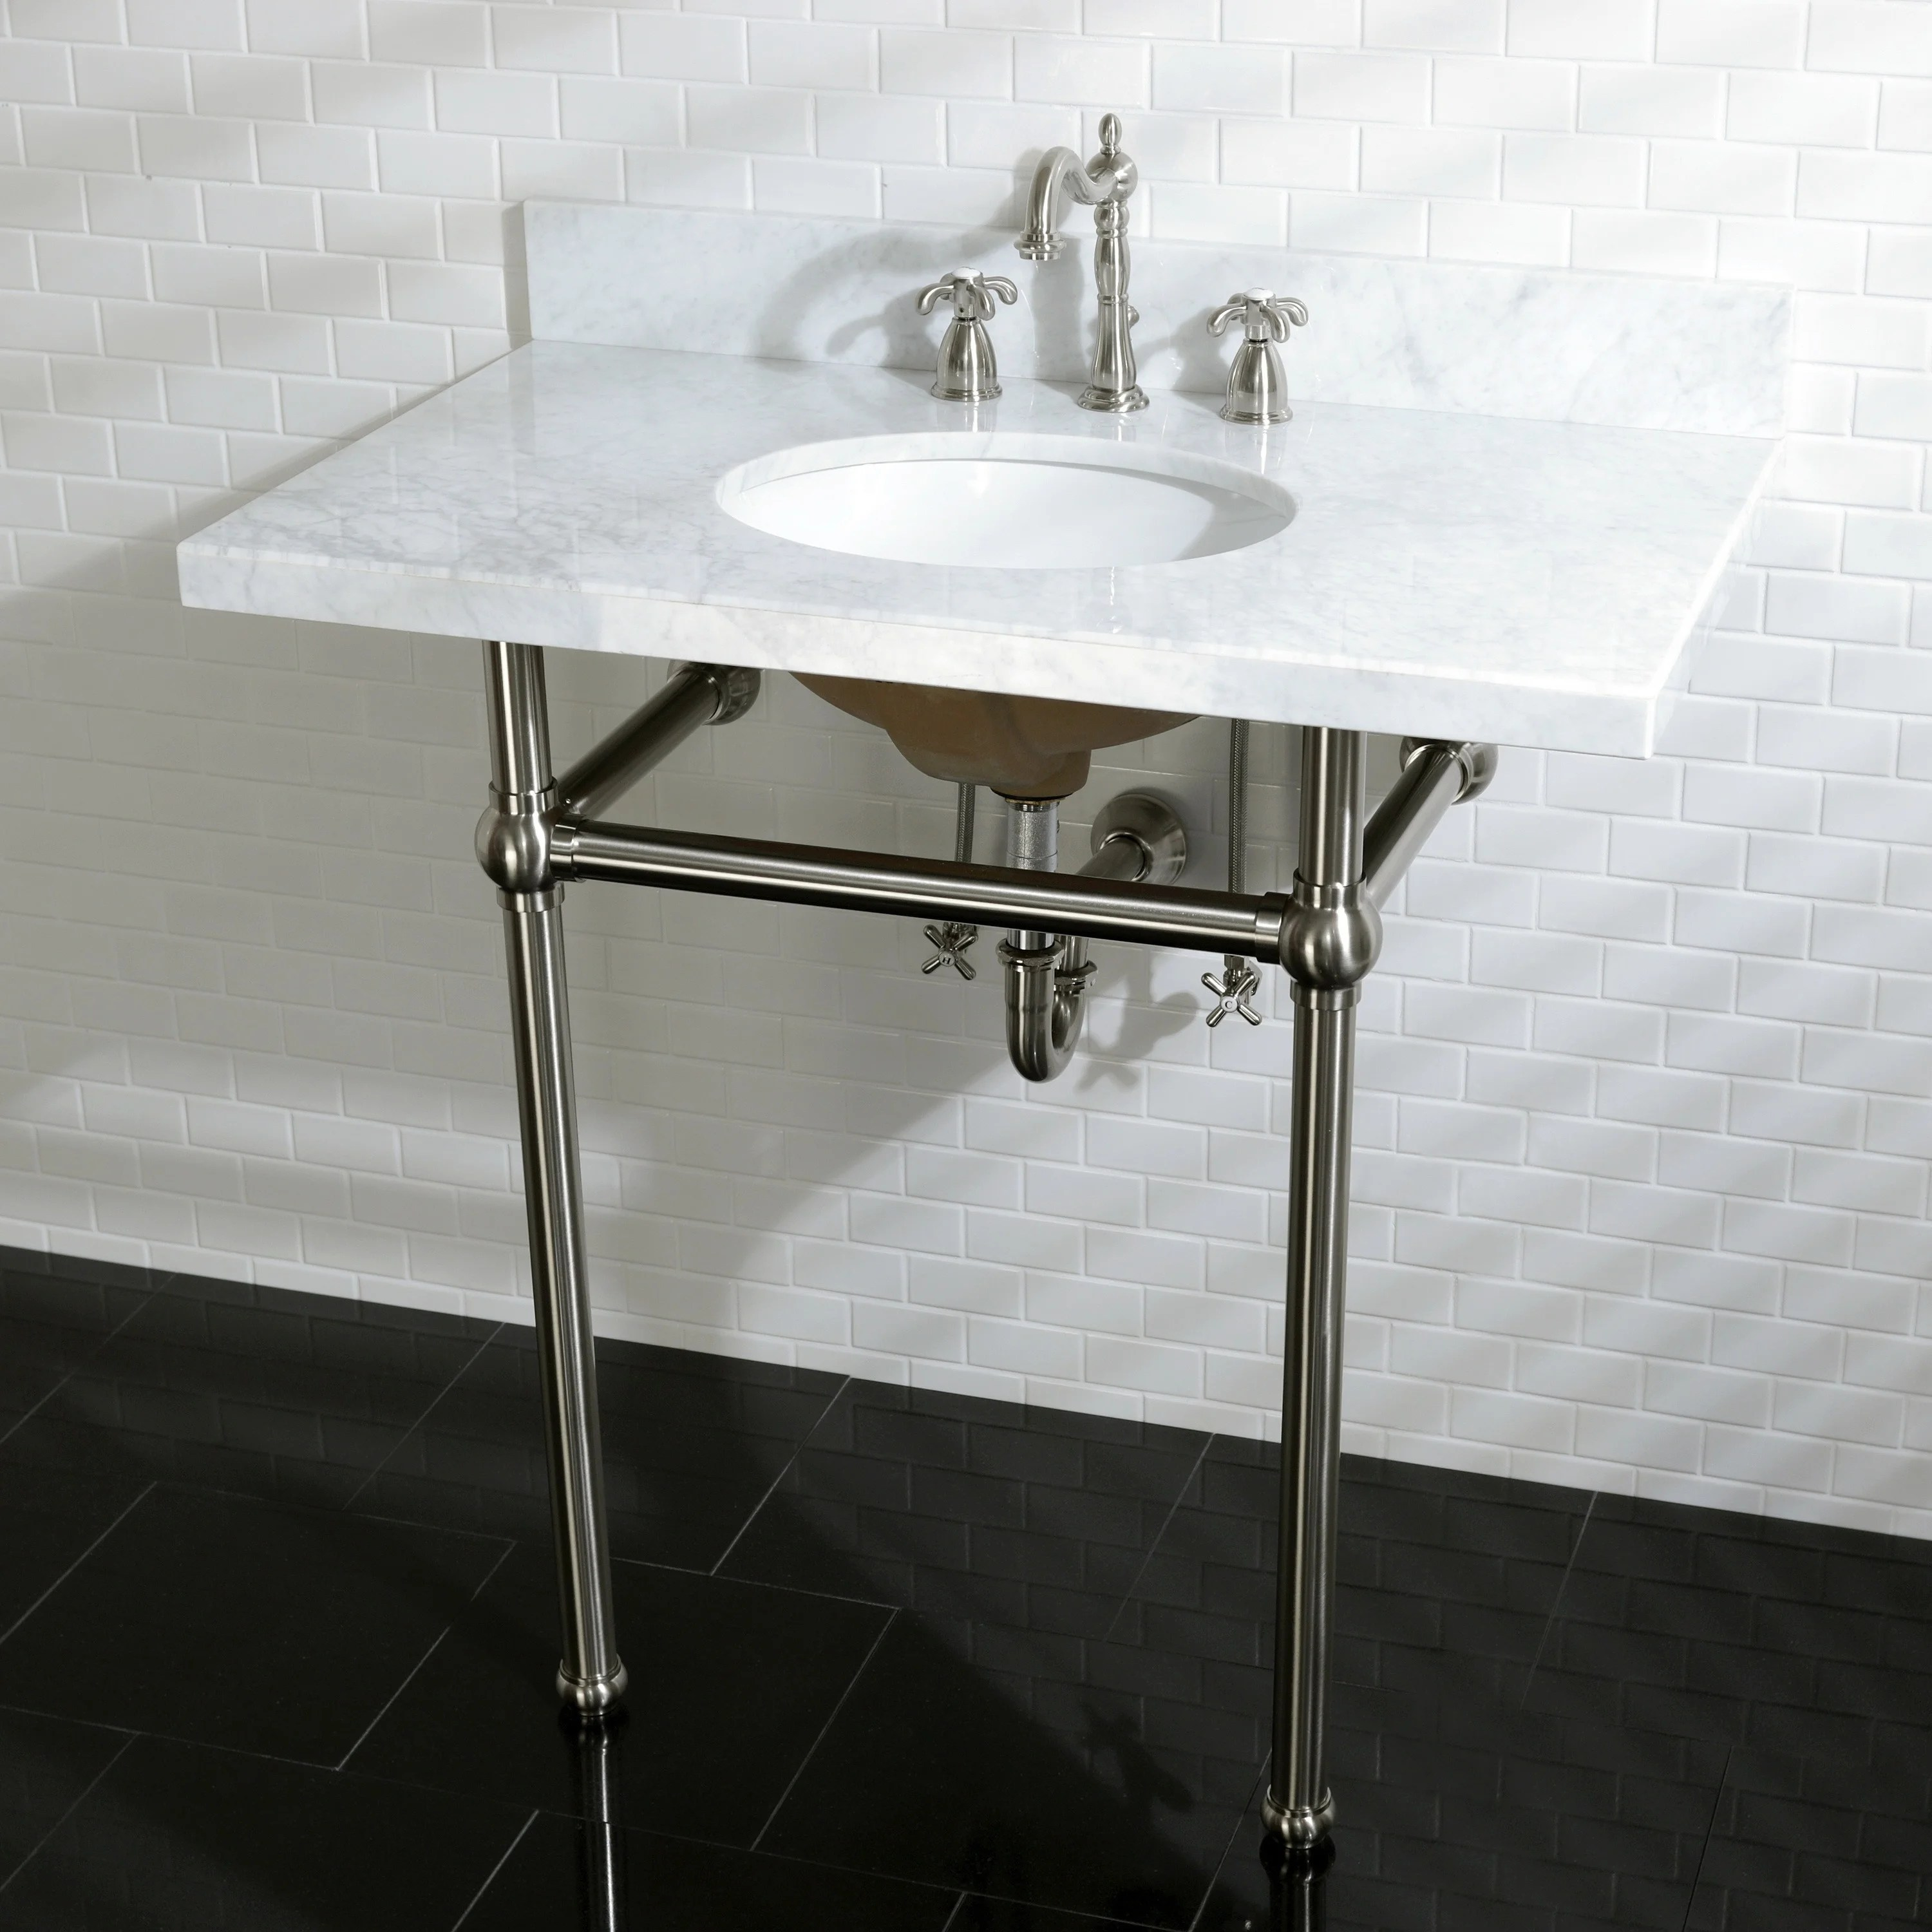 vintage carrara marble 36 inch console sink with metal stand